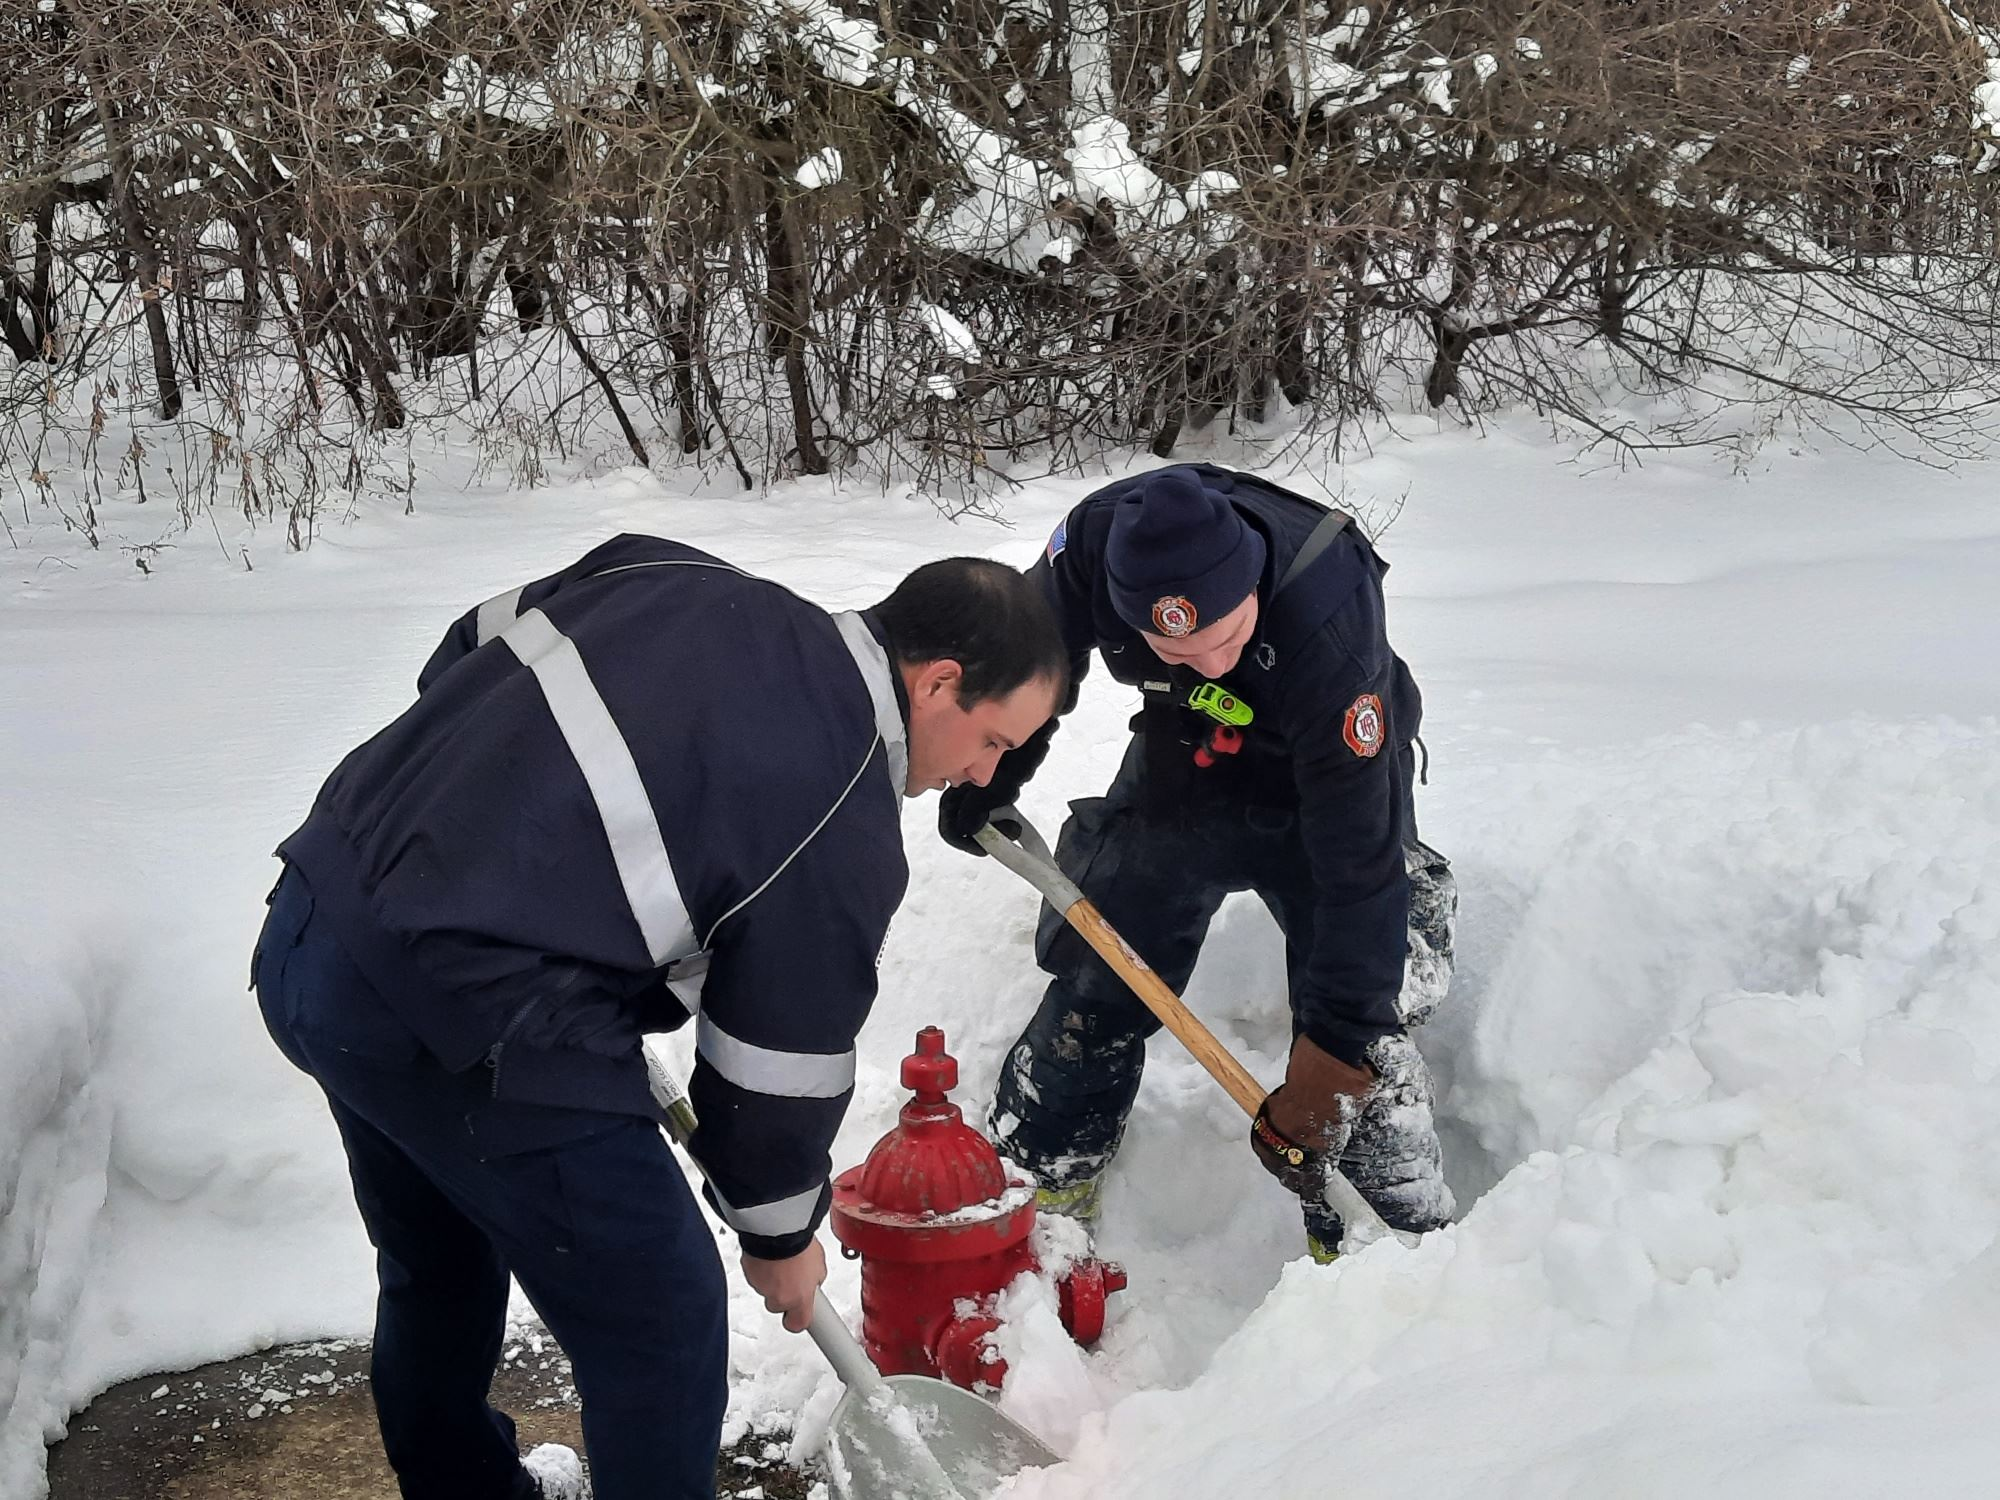 Firefighters Removing Snow